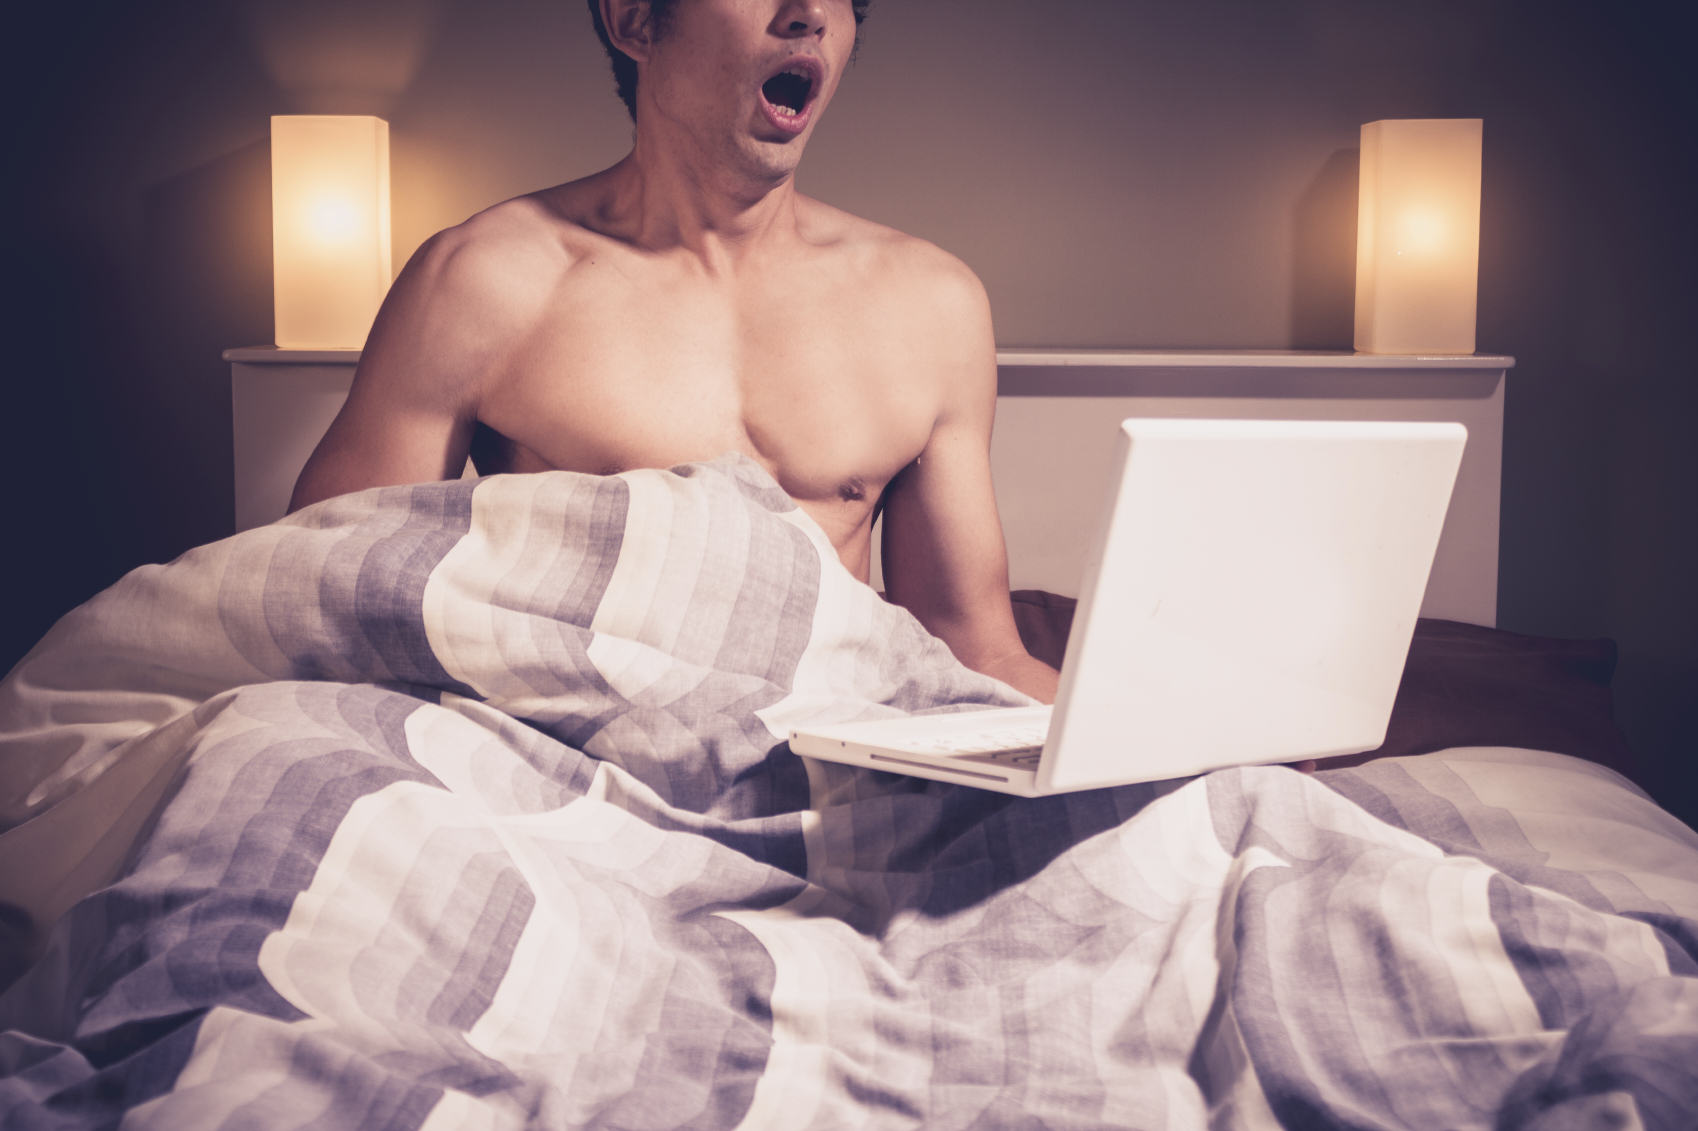 Watching Porn Might Be Causing You Stress, But Not Why Youd Think watching porn 1